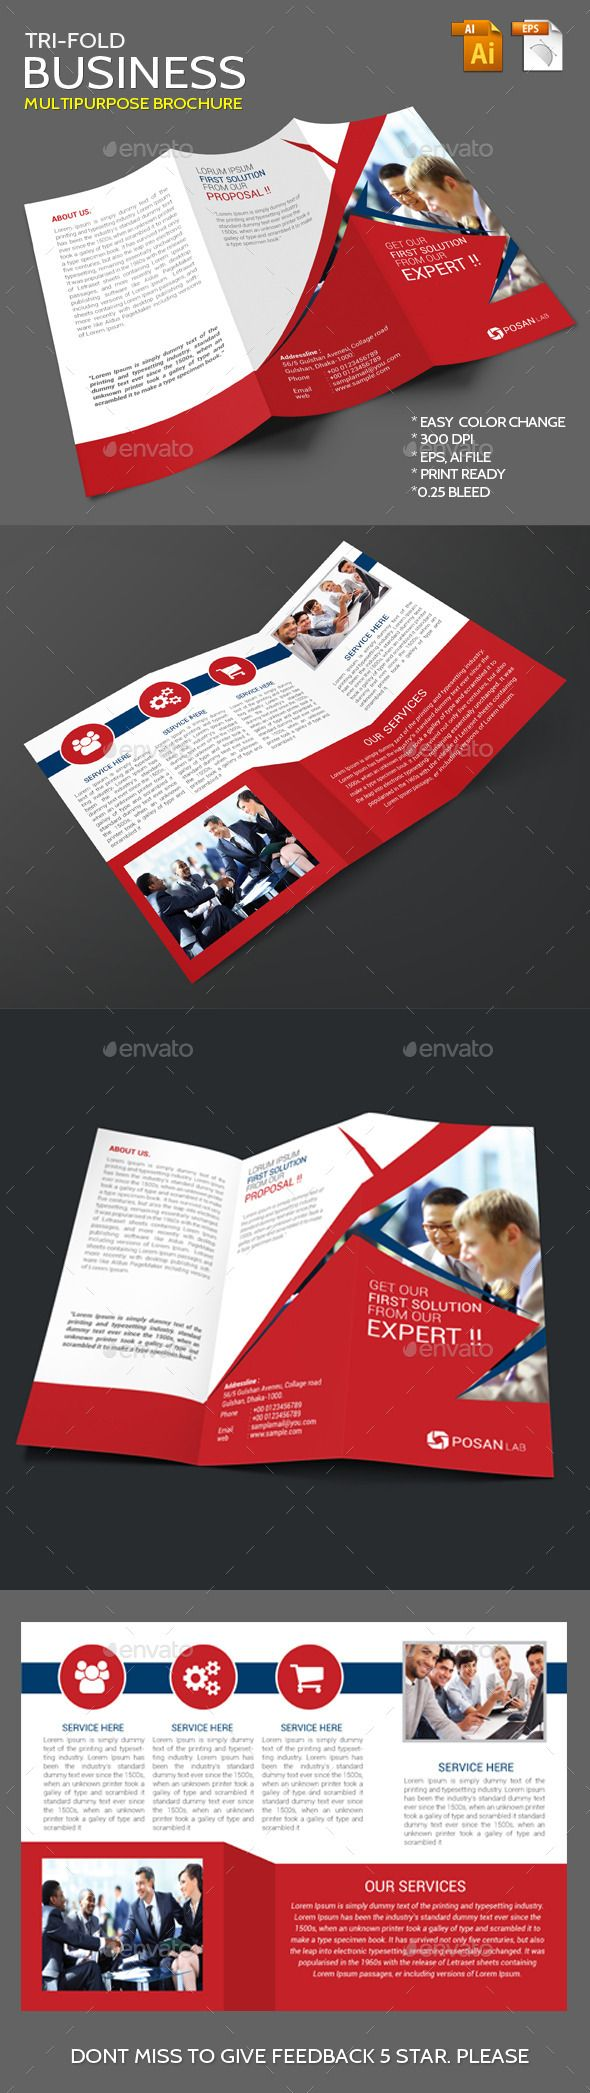 Business Corporate Trifold Brochure Template #brochure #design Download: http://graphicriver.net/item/business-corporate-trifold-brochure/11449145?ref=ksioks